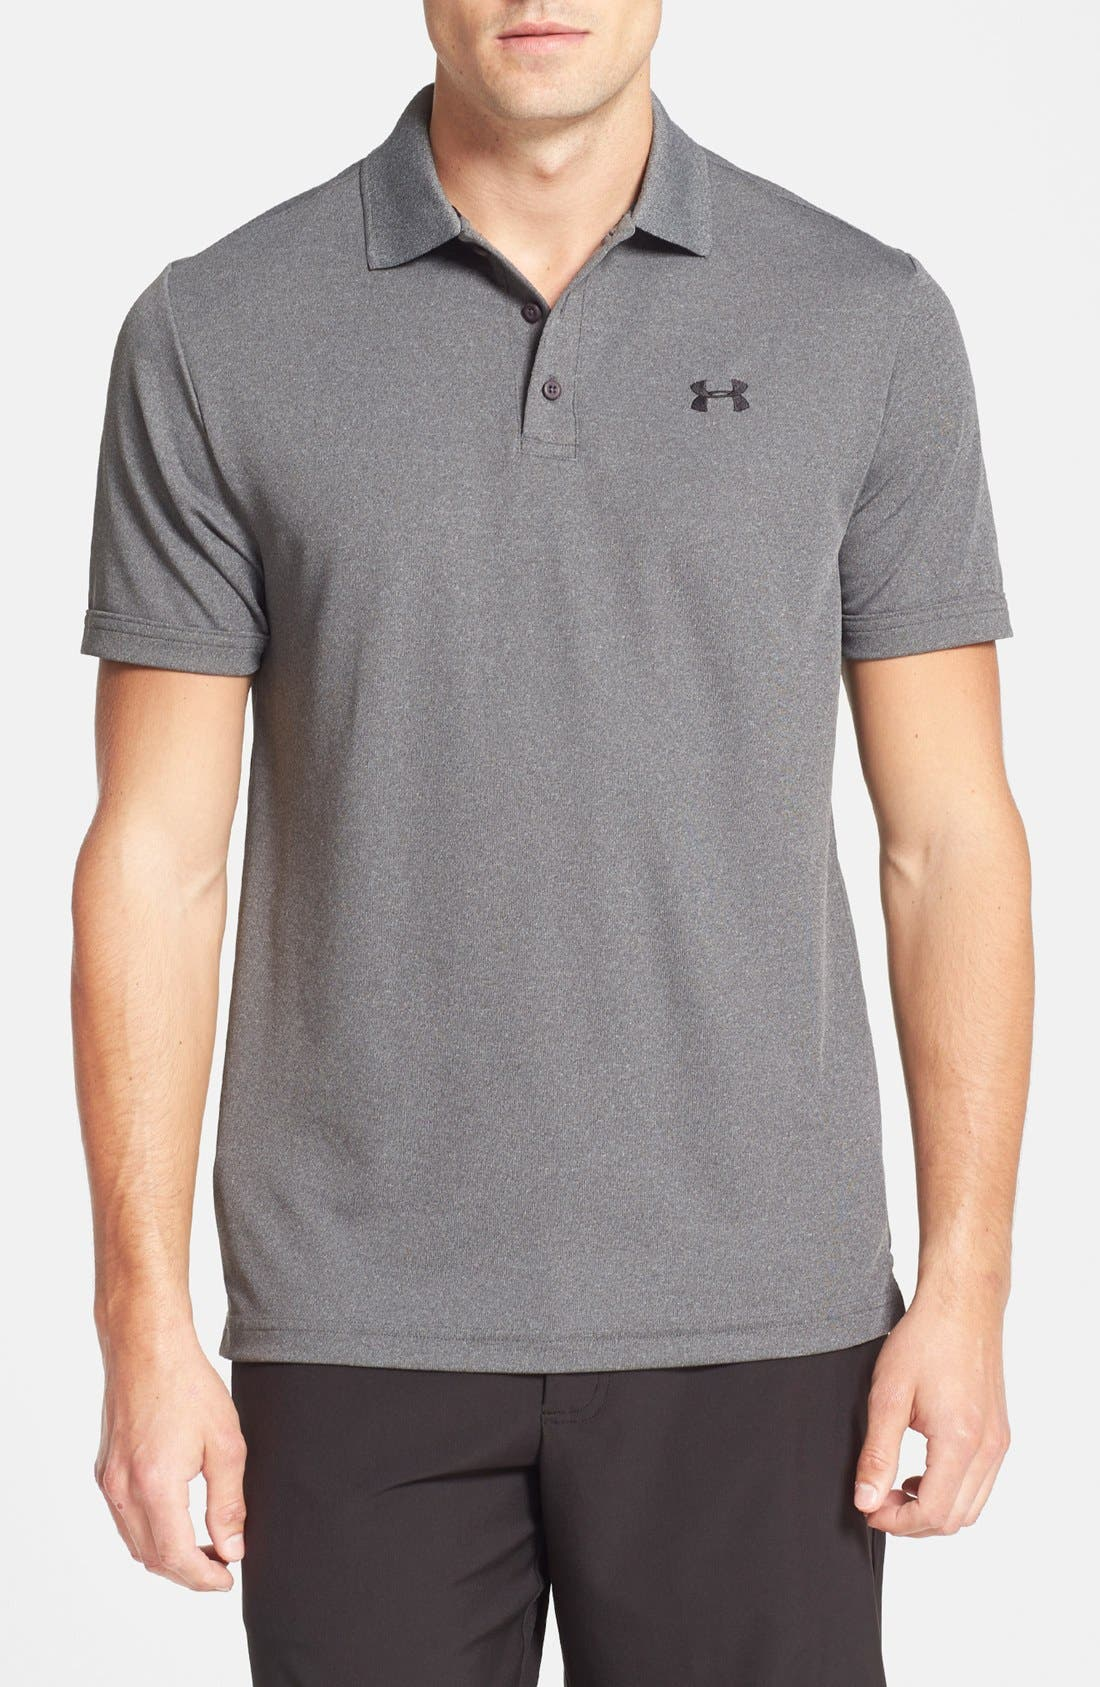 'Performance 2.0' Sweat Wicking Stretch Polo,                             Main thumbnail 1, color,                             090